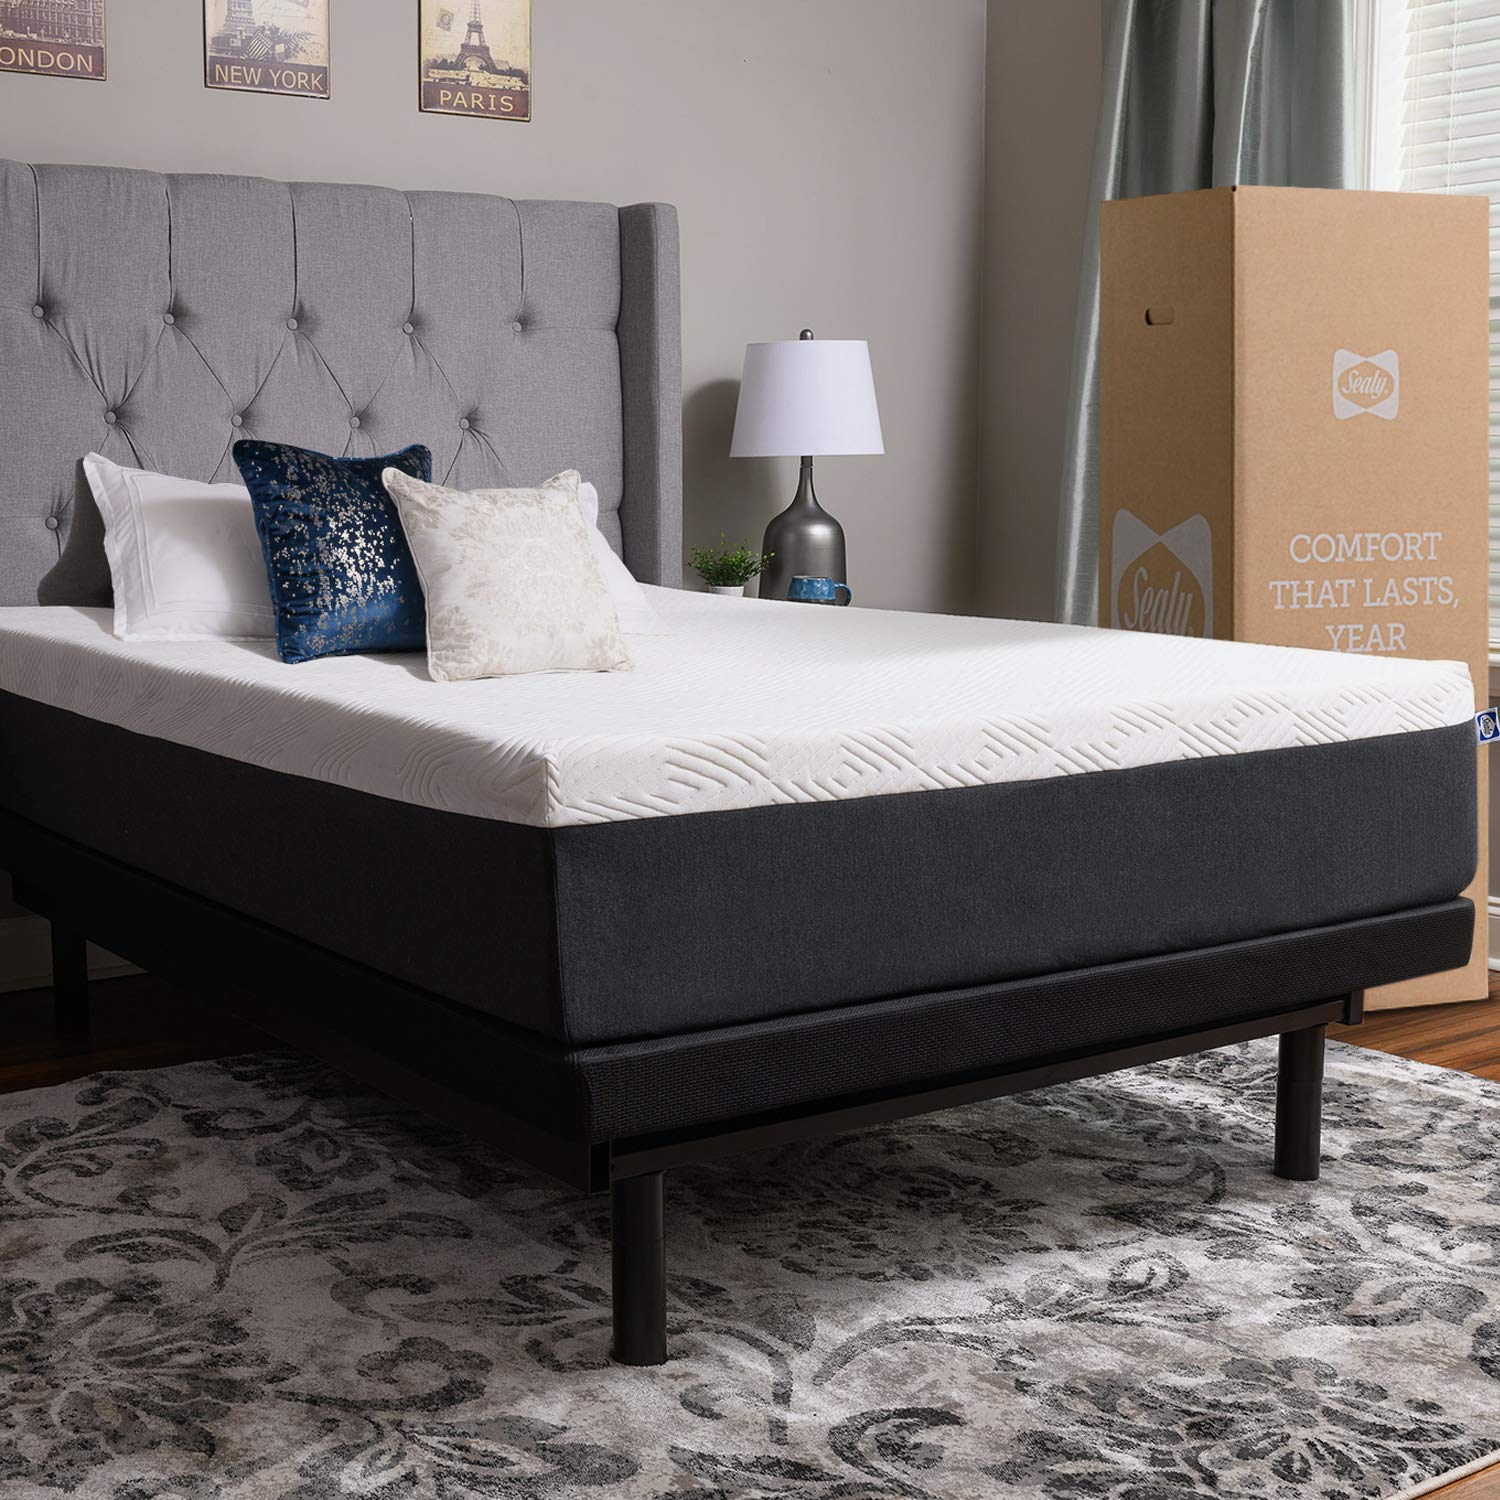 Amazoncom Sealy 12 Inch Memory Foam Bed In A Box Adaptive